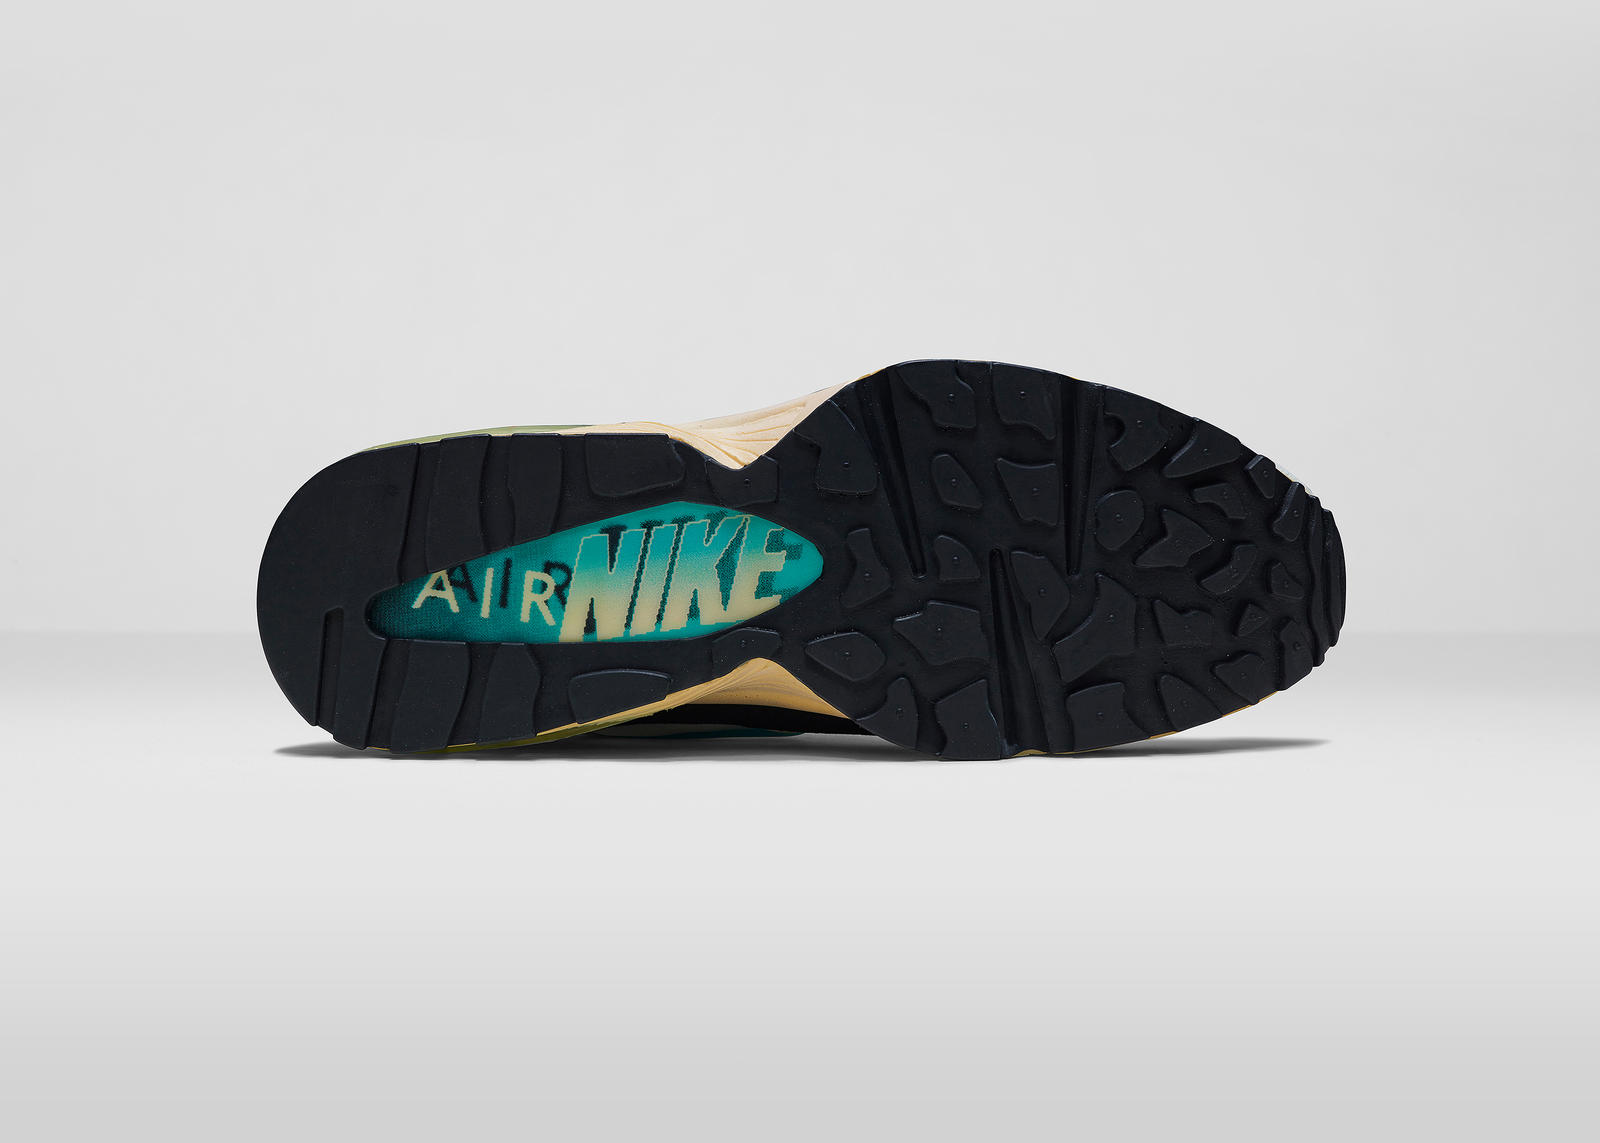 Nike_AirMaxDay_2015_1993_OUT